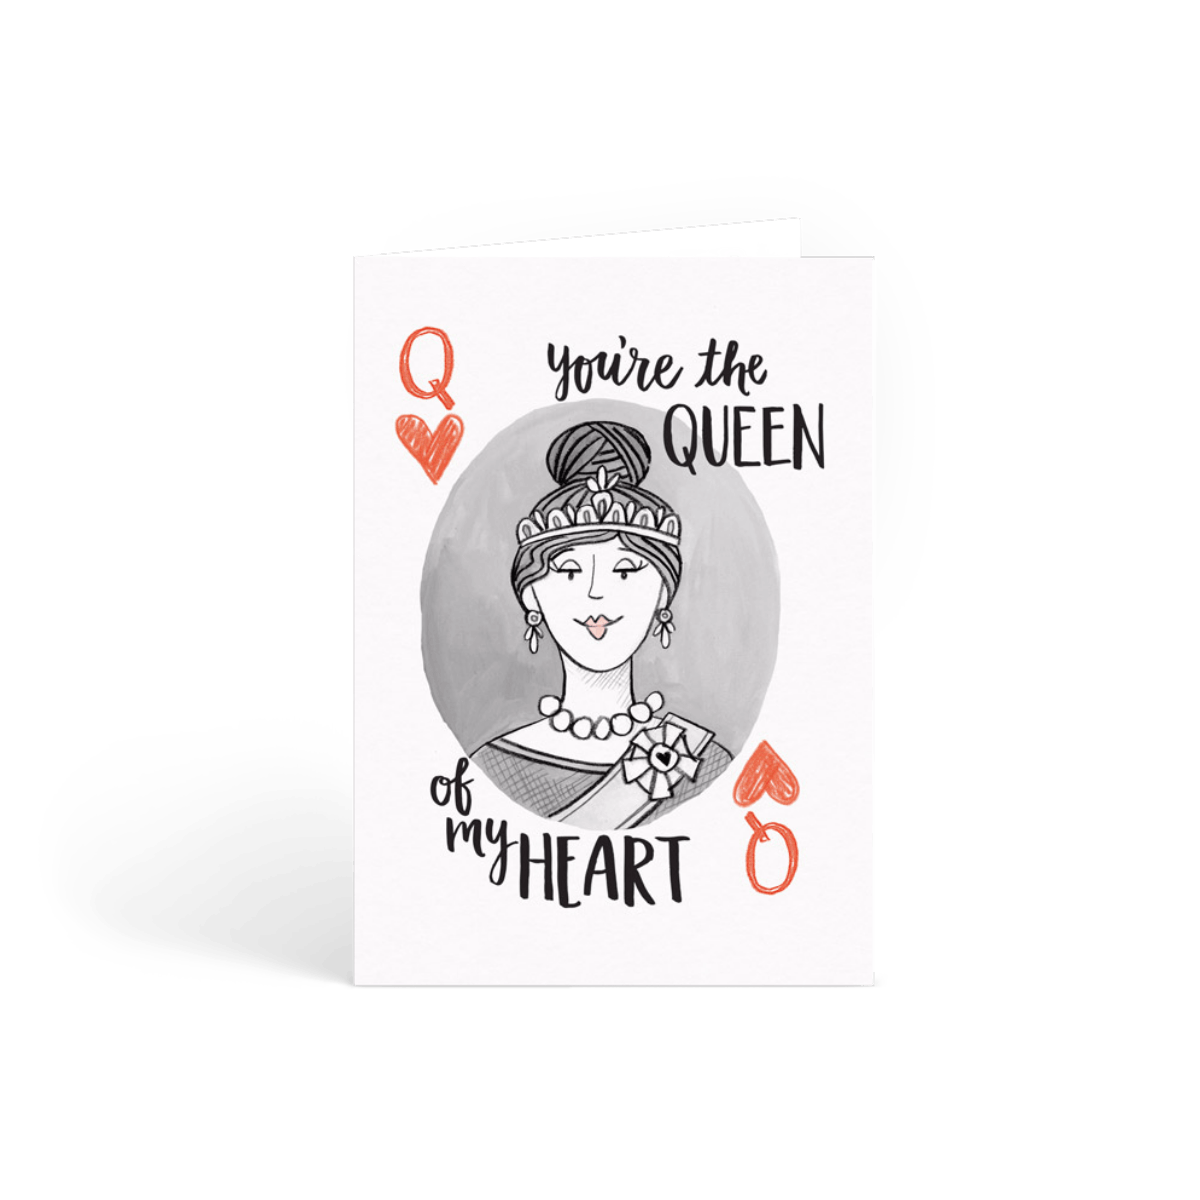 Https%3a%2f%2fwww.papier.com%2fproduct image%2f4271%2f2%2fqueen of my heart 1124 front 1454005151.png?ixlib=rb 1.1